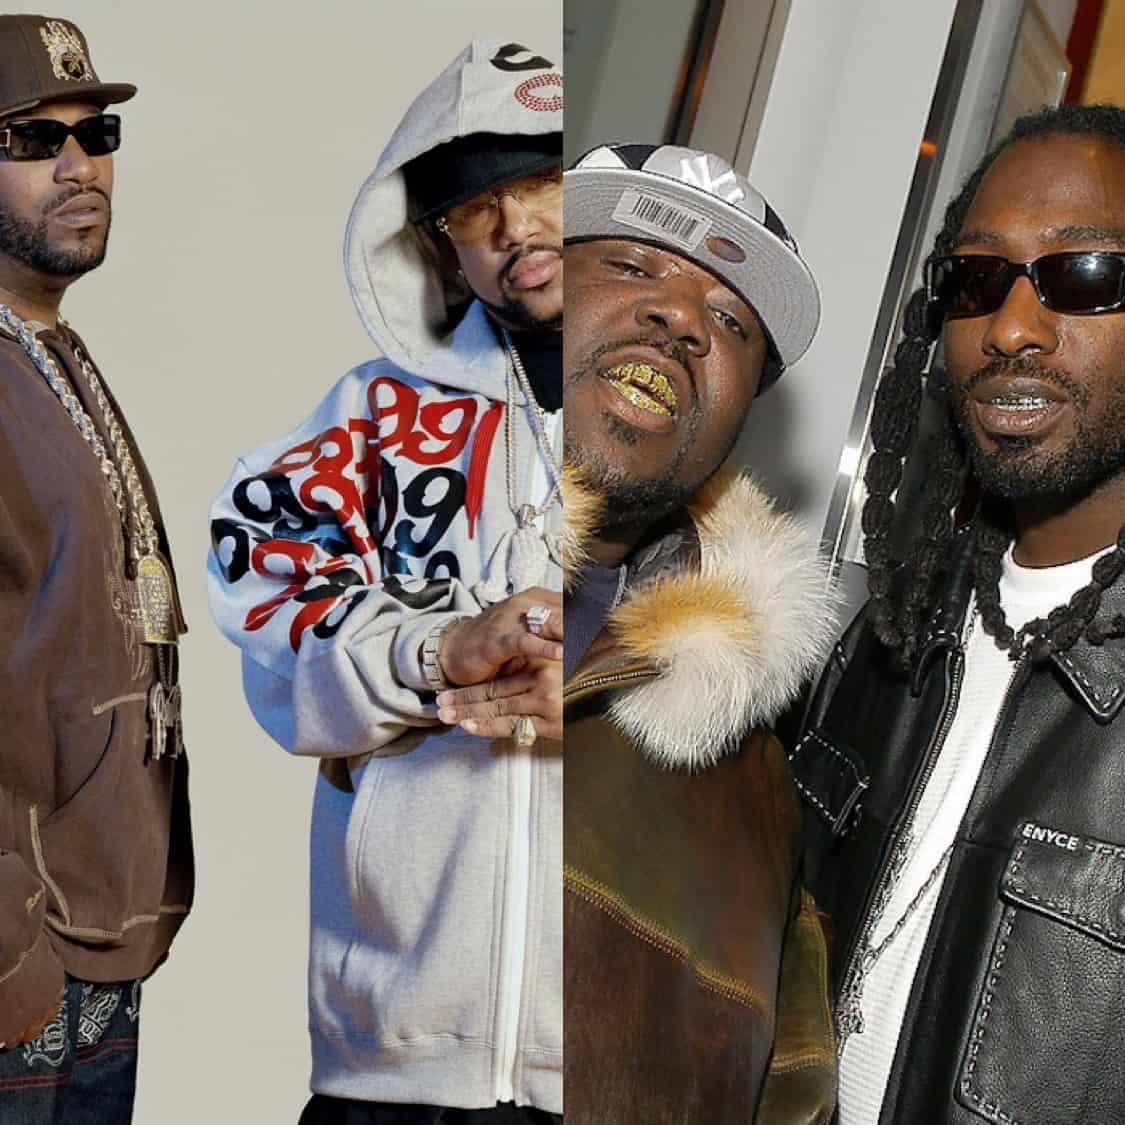 UGK and 8Ball & MJG Verzuz Confirmed By Bun B bounce gvng